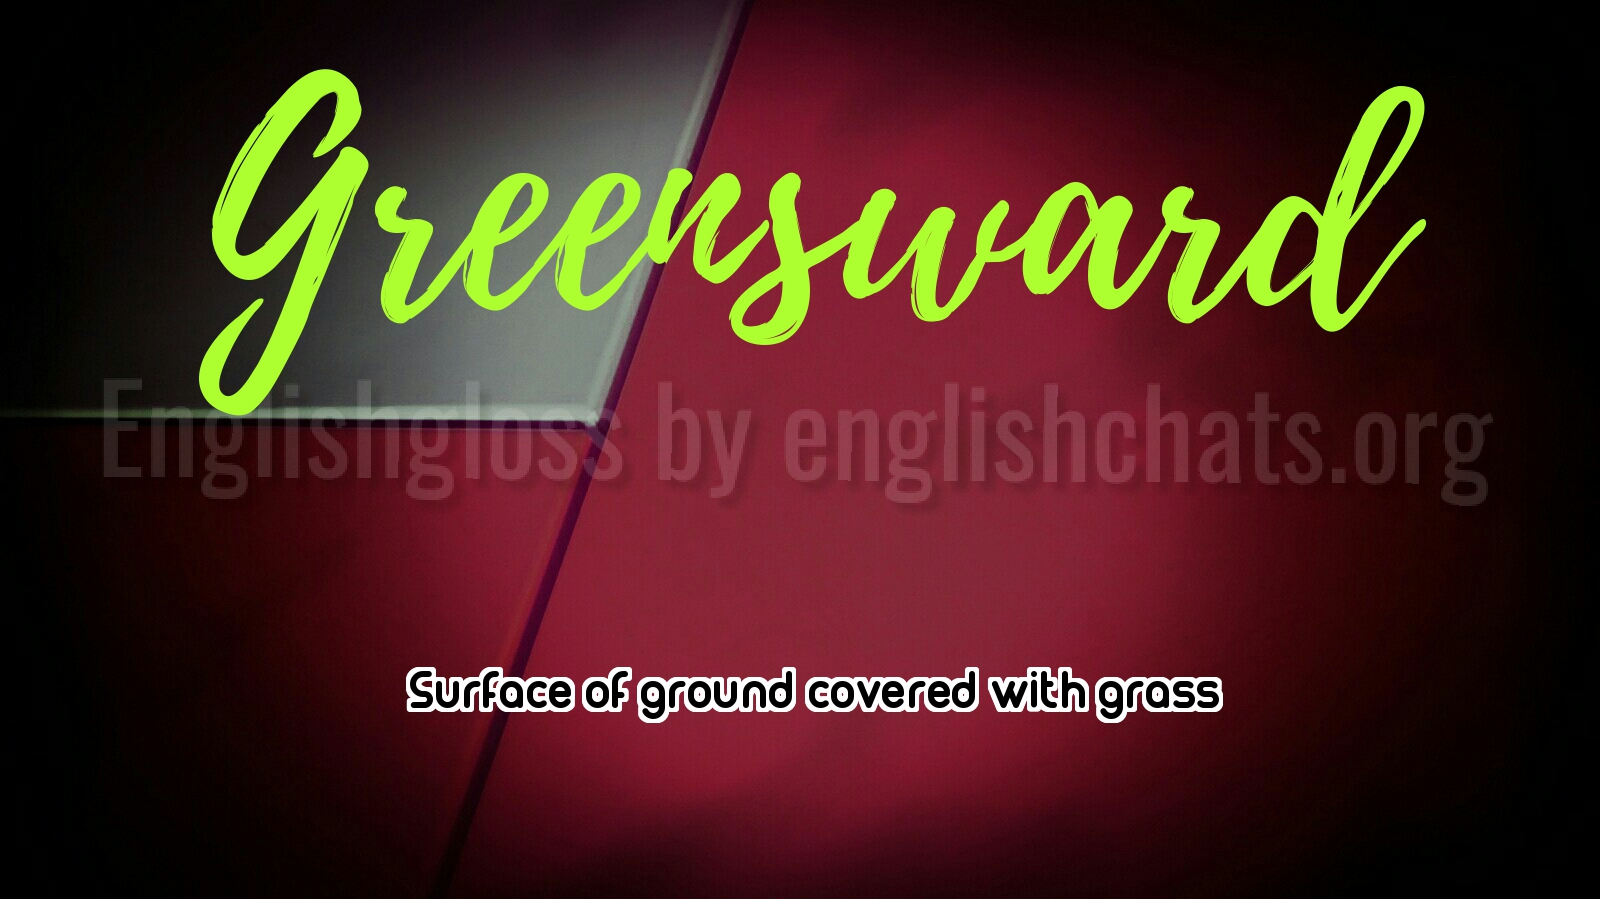 Word of the day- Greensward